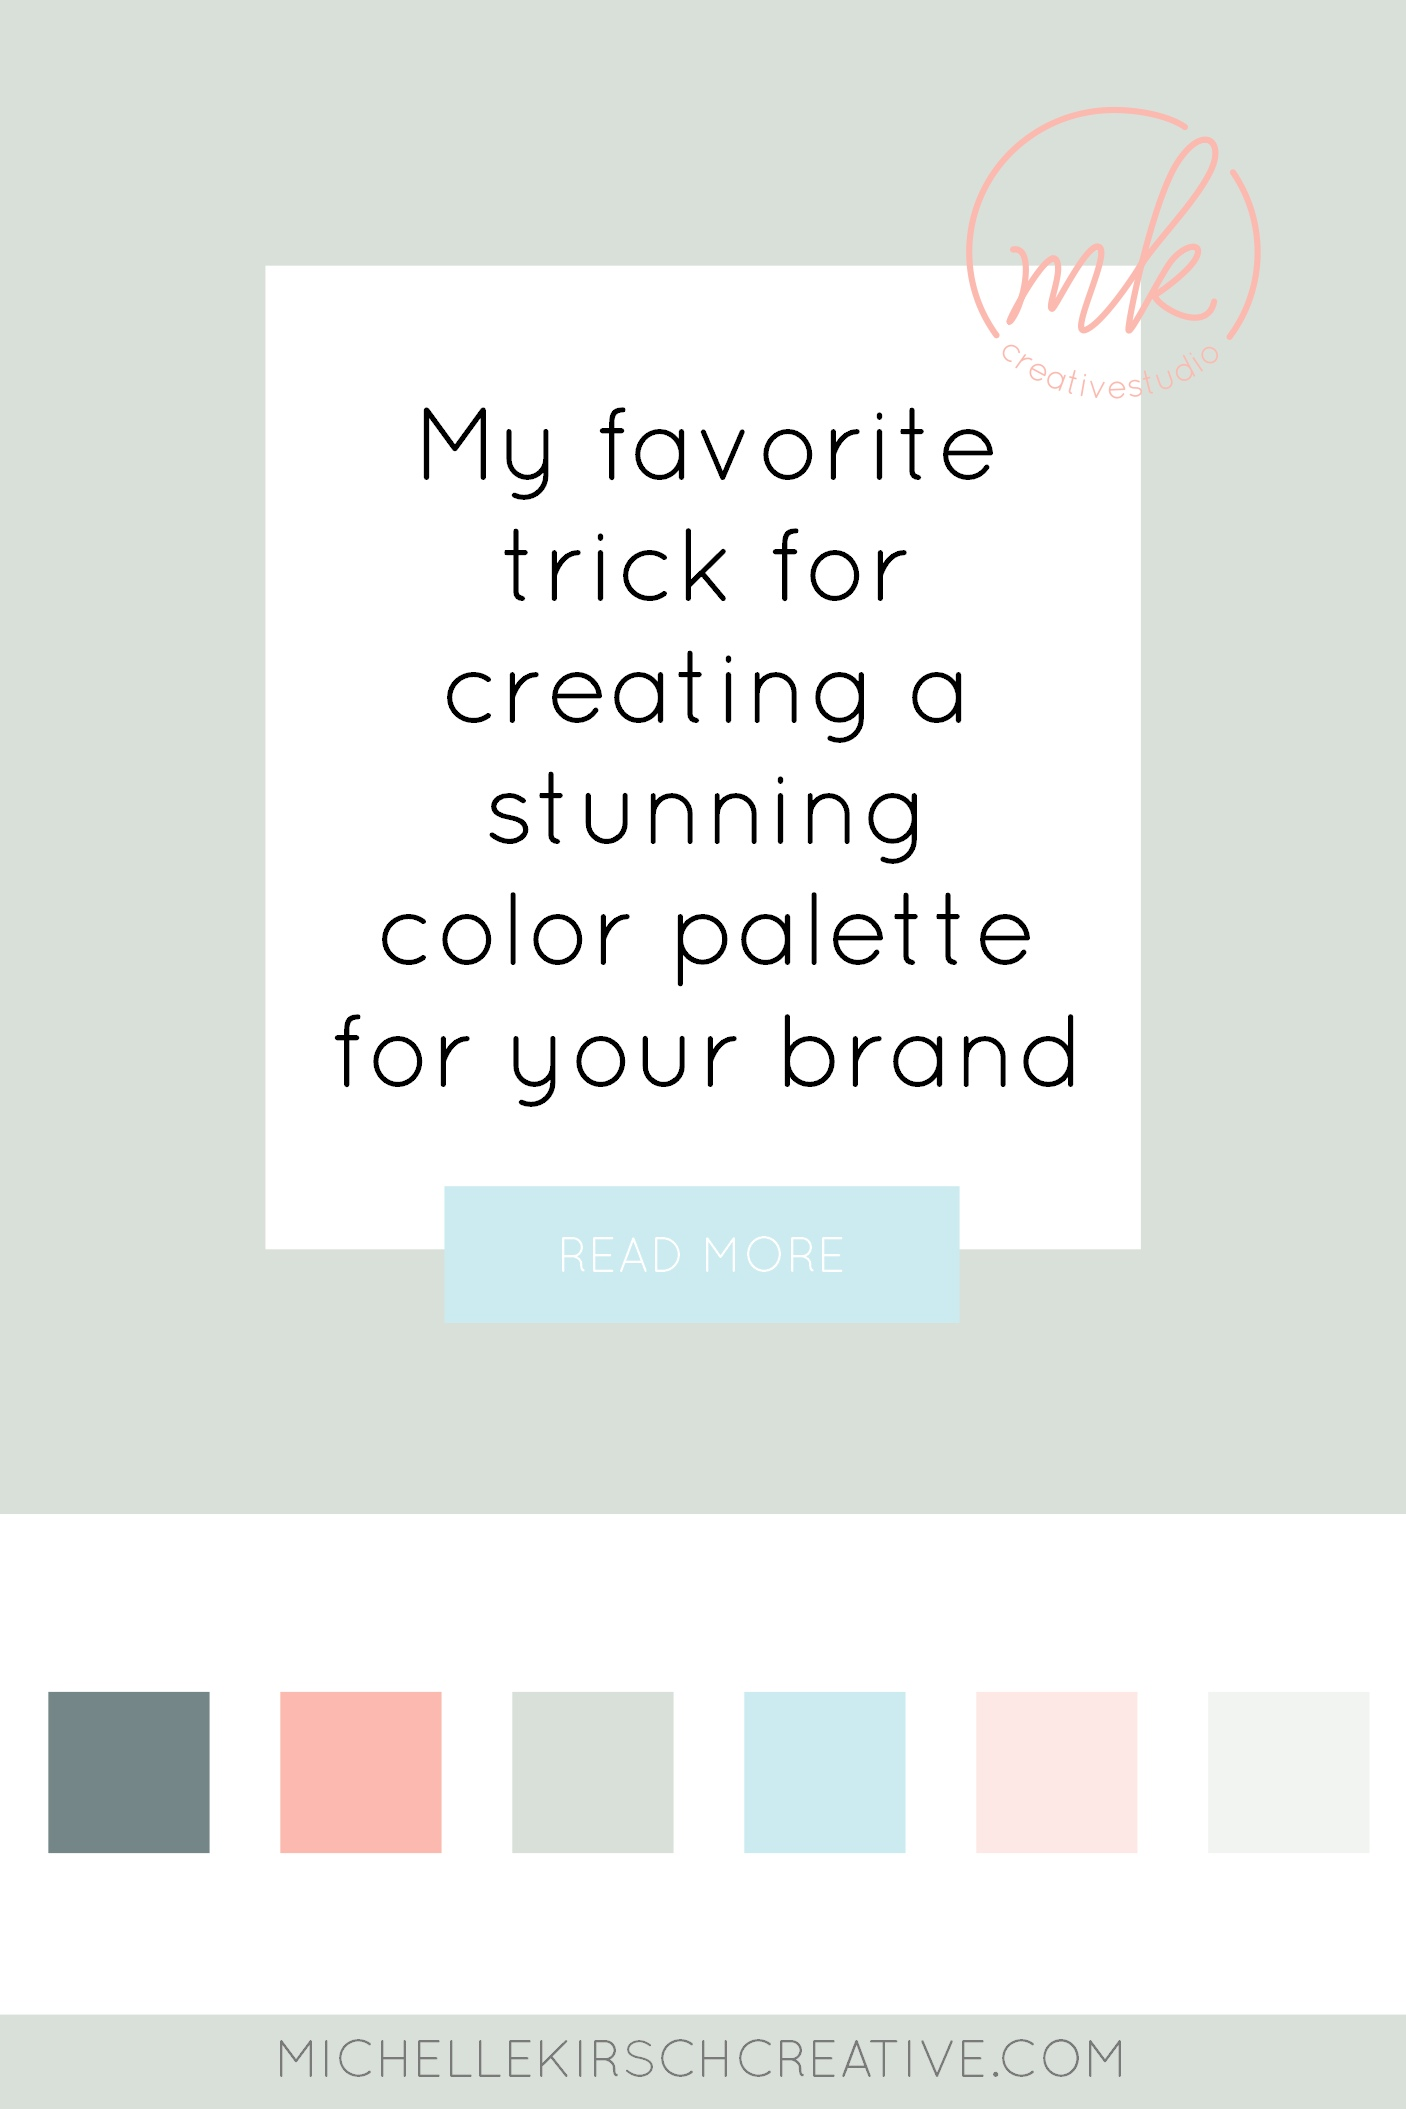 My favorite trick for creating a stunning color palette for your brand